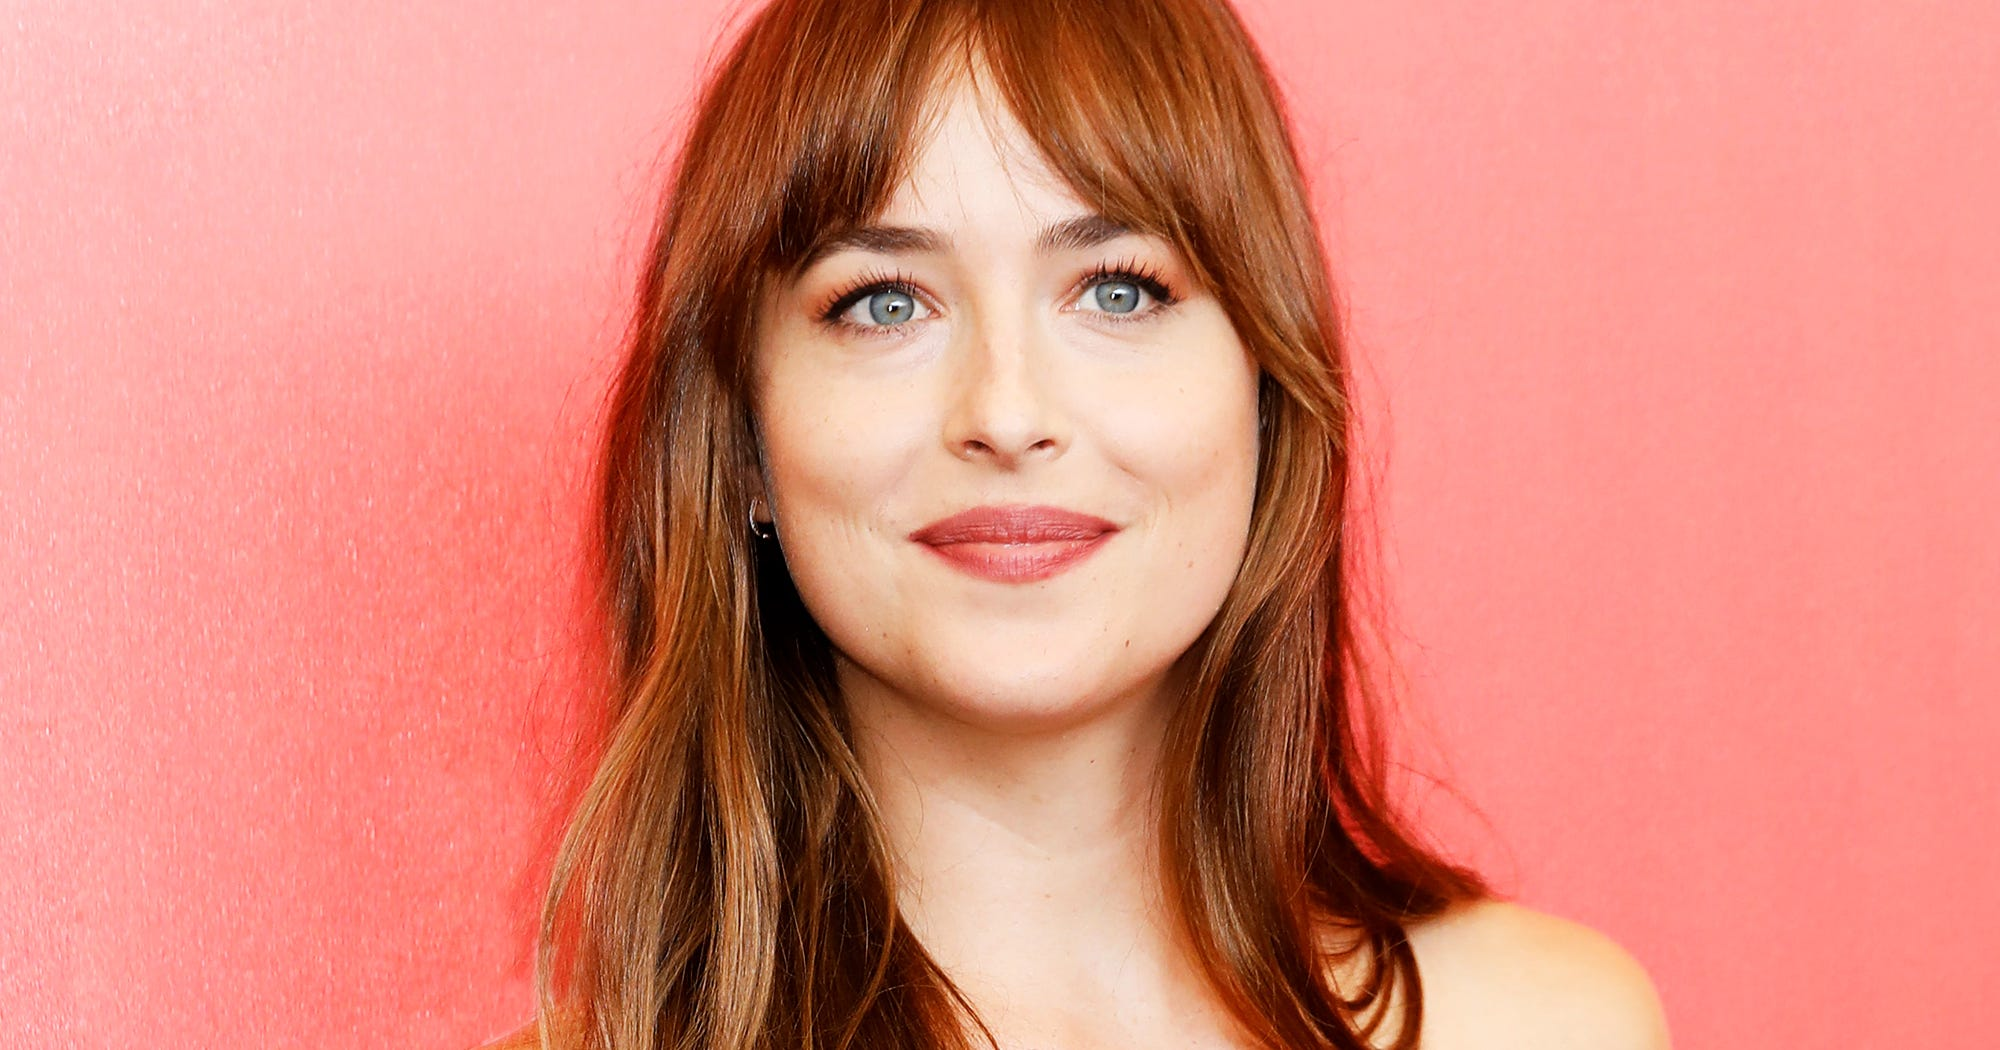 Dakota Johnson Is Taking Her Fake Pregnancy Very Well